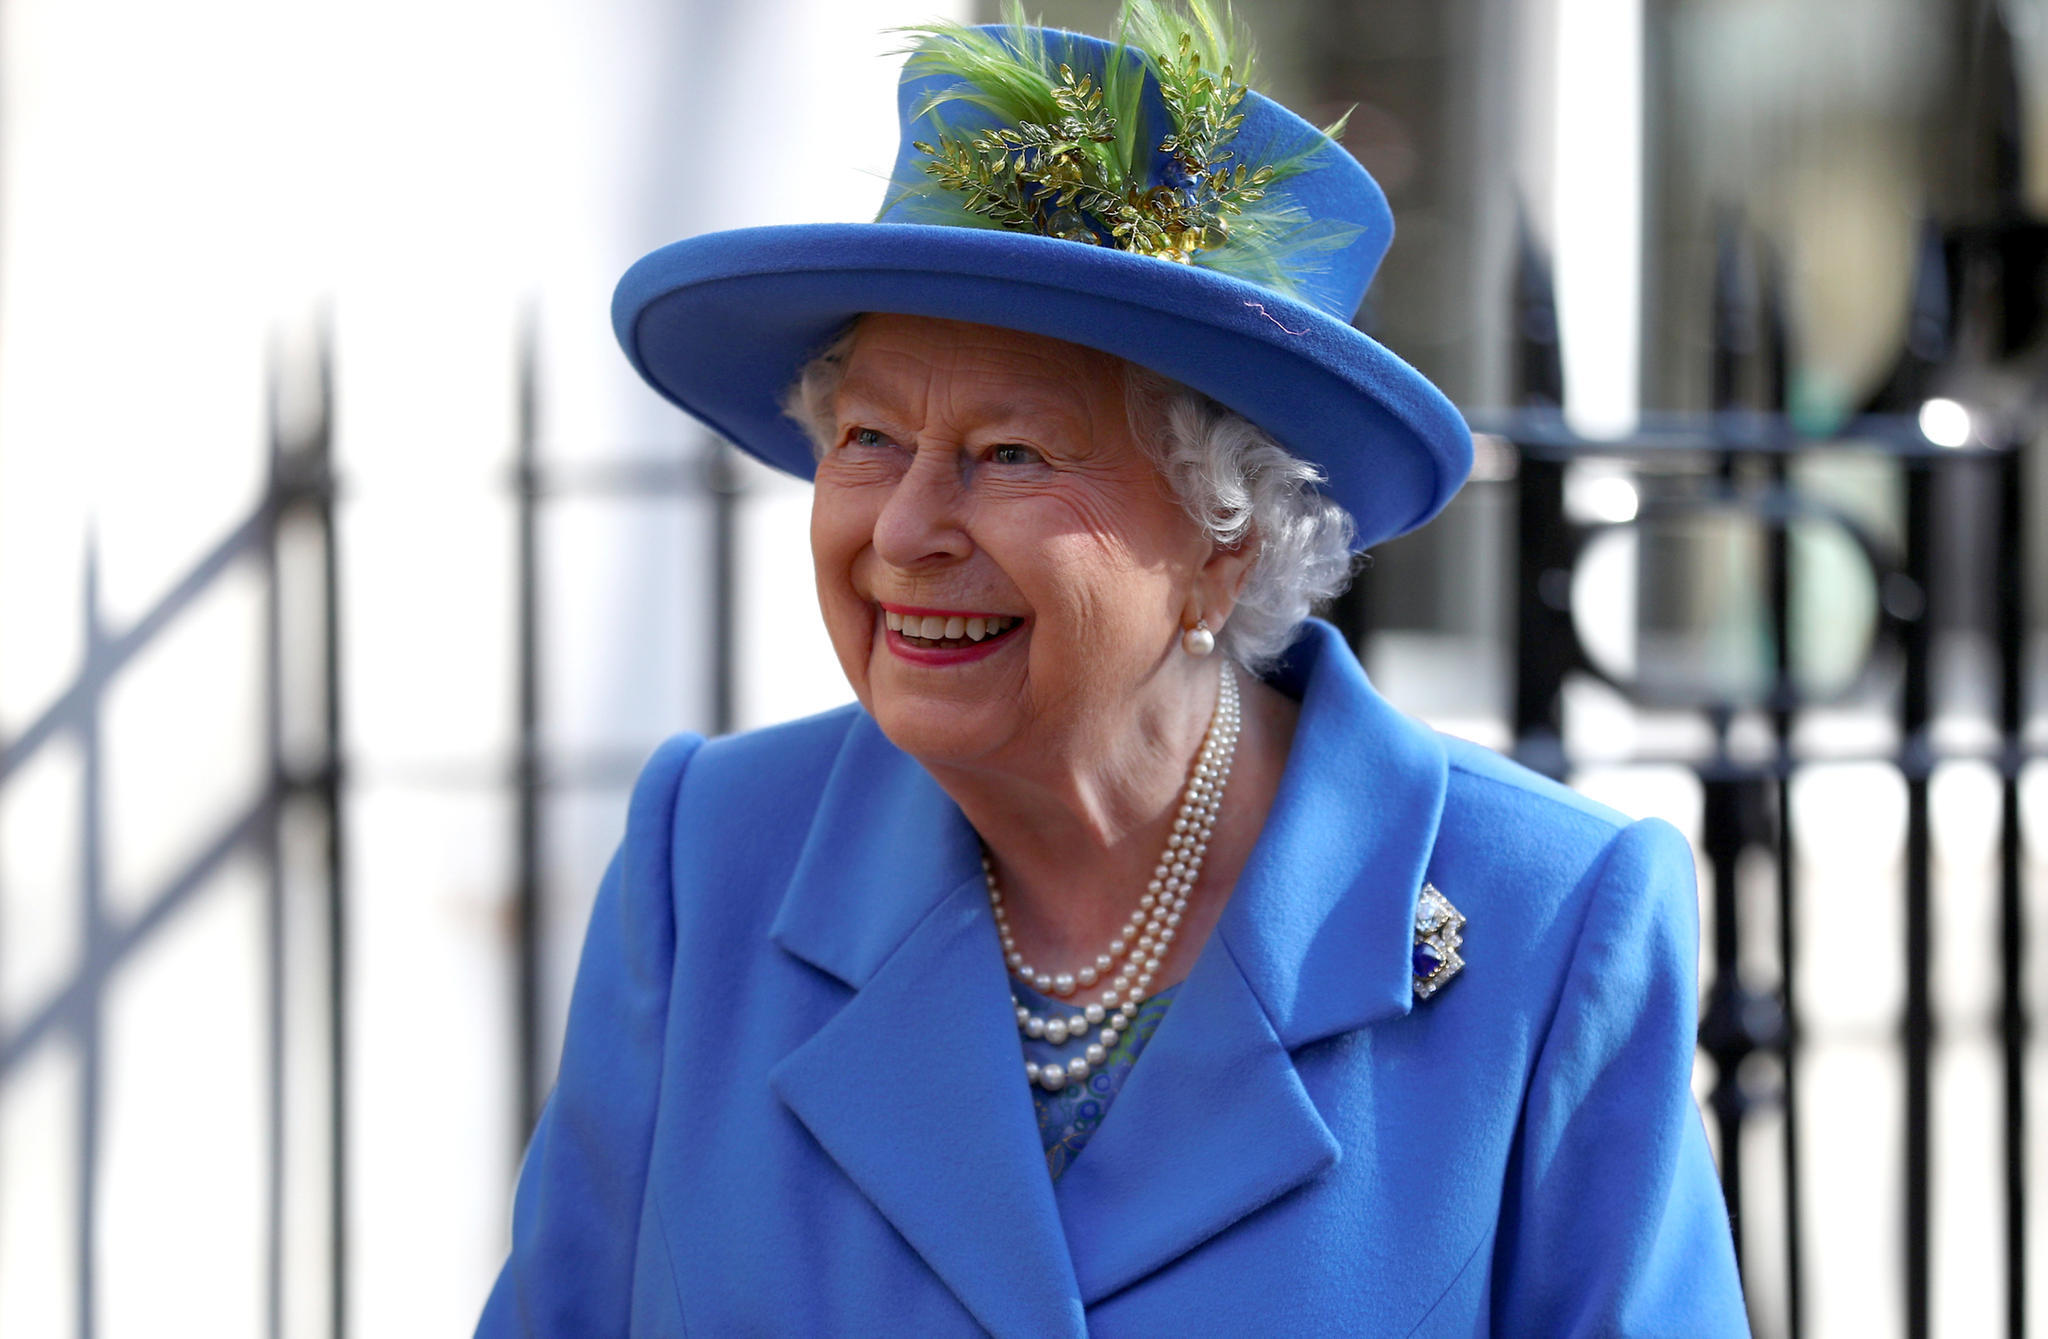 Queen Elizabeth II: Geheime Audienz im Buckingham-Palast